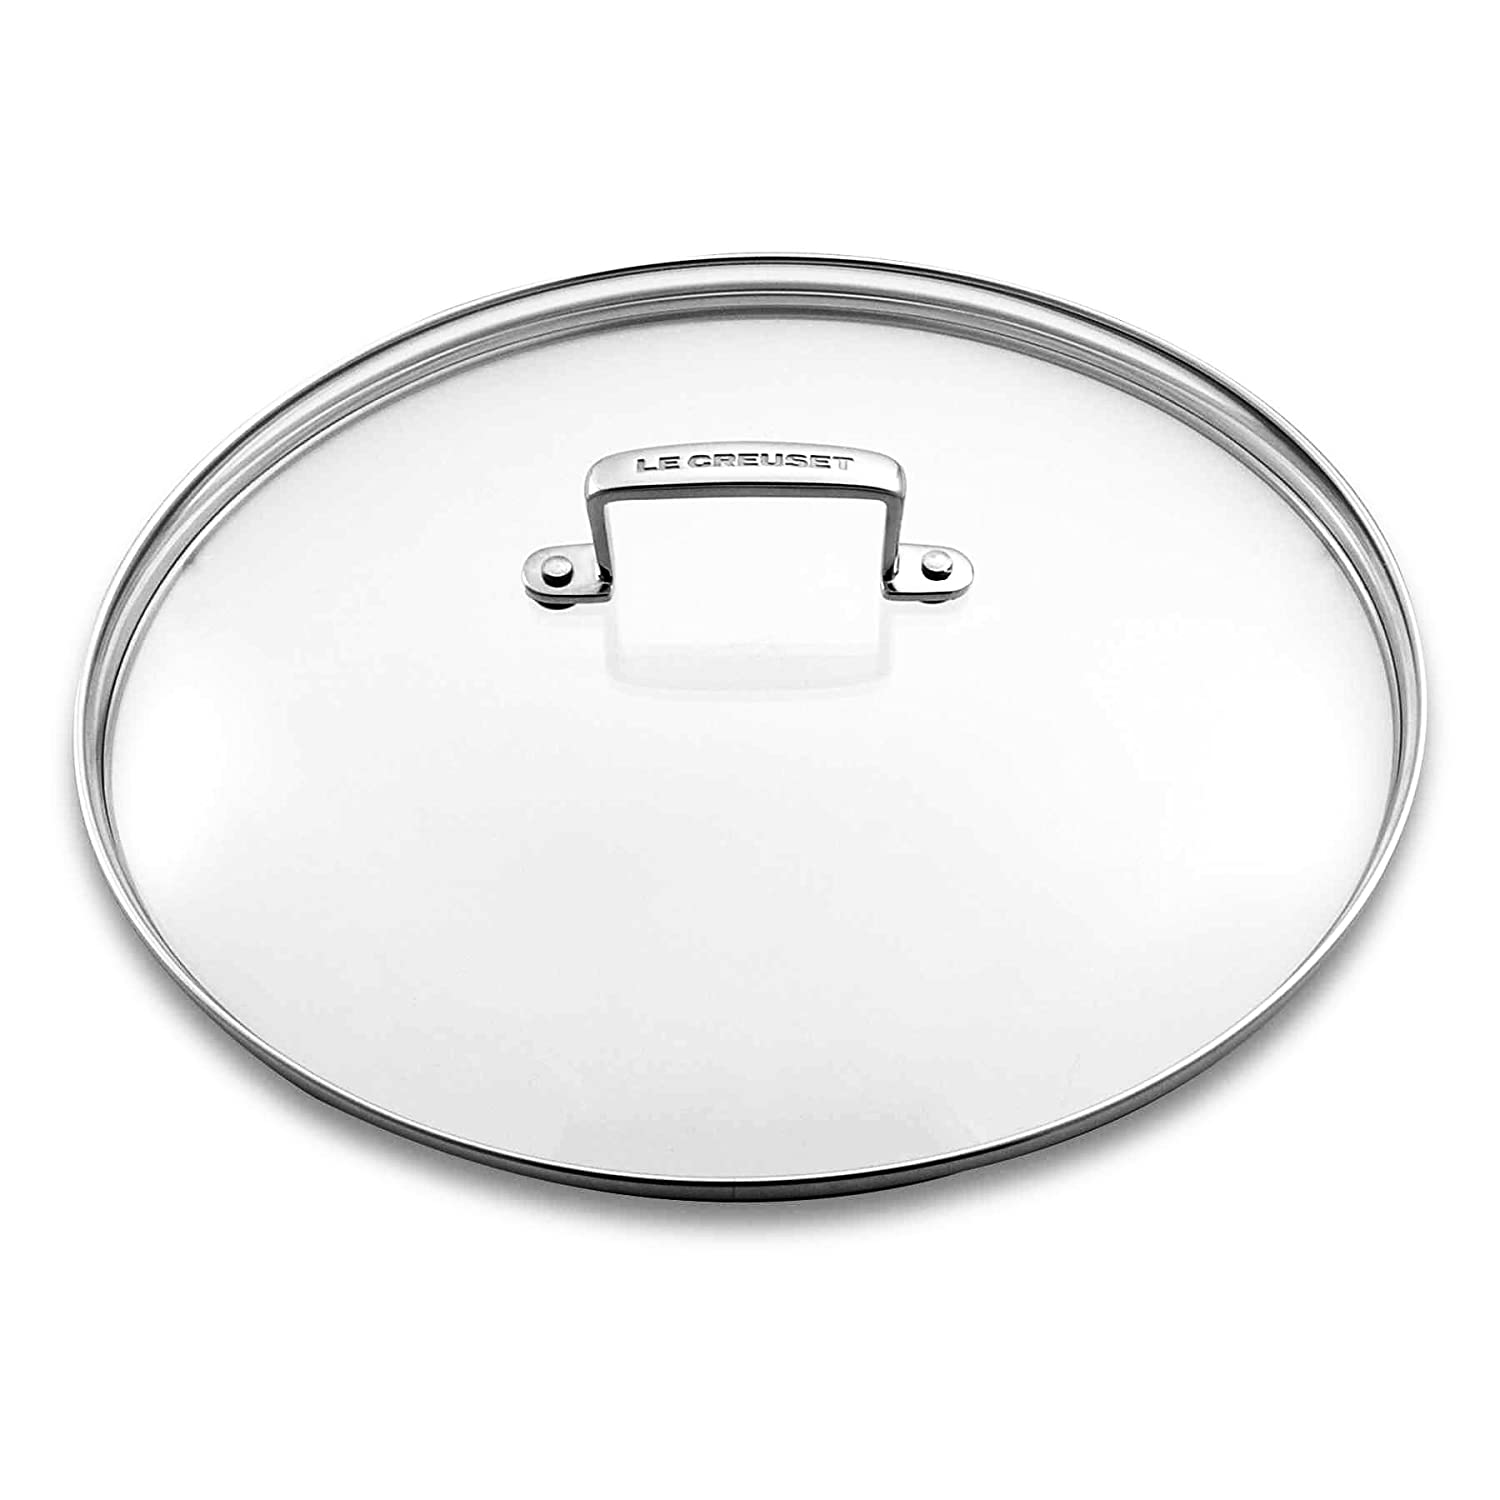 Le Creuset Les Forgees Glass lid diam.24 cm Transparent